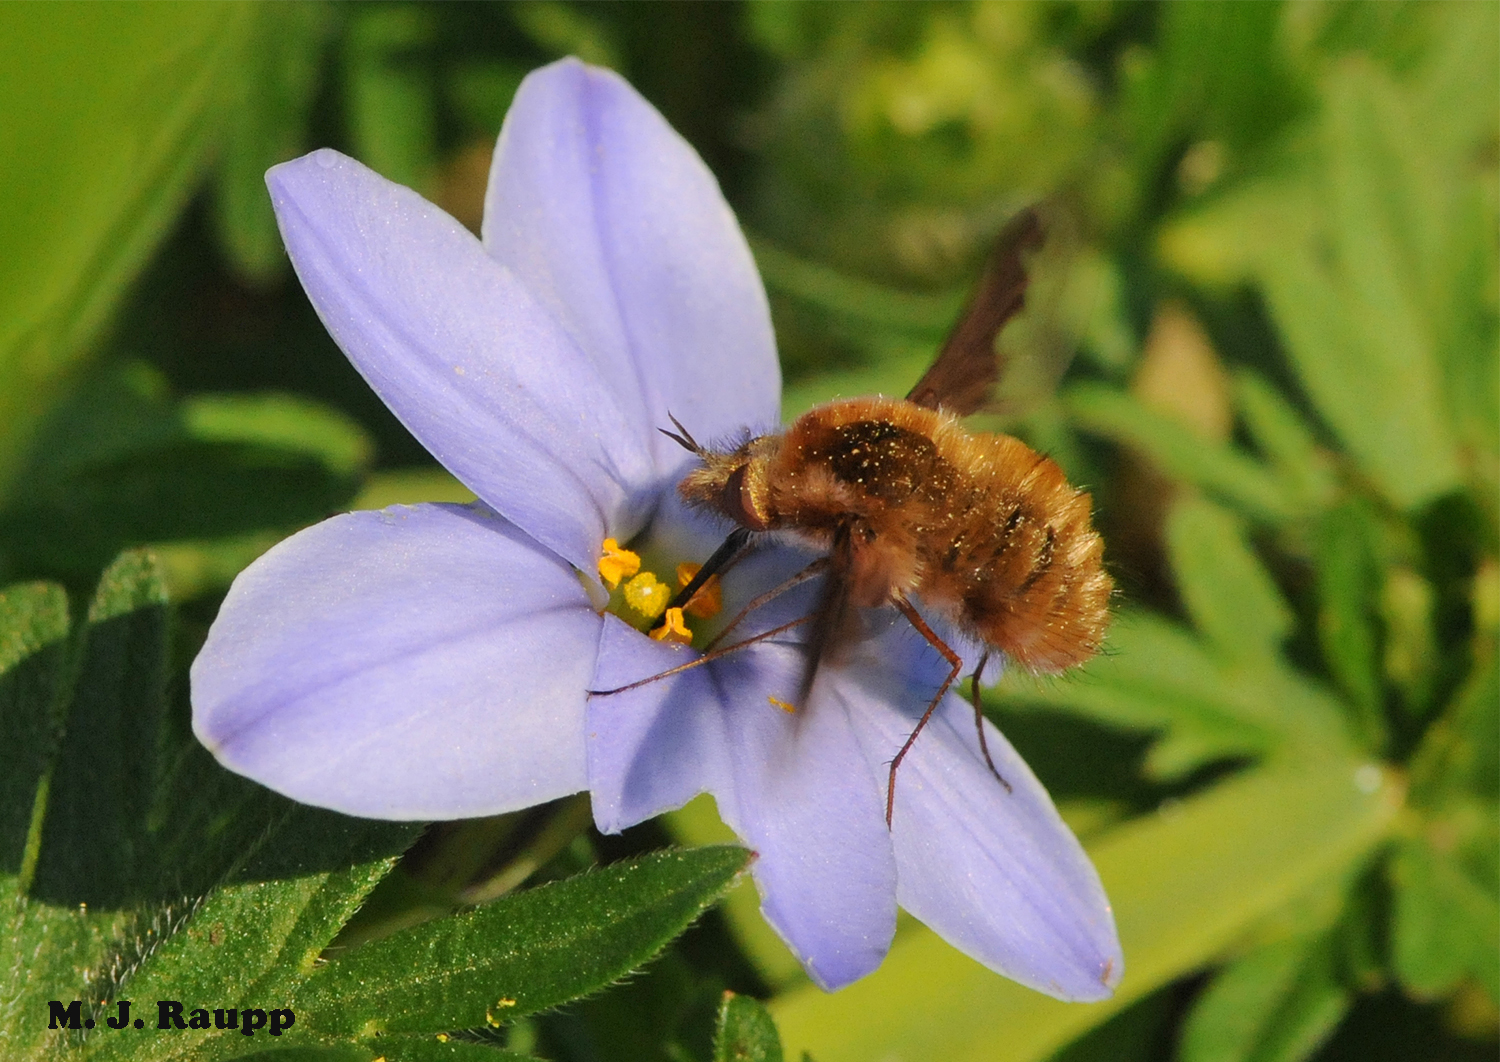 """Bee flies like this Greater Bee Fly frequent meadows bustling with blossoms and are often confused with bees.                      Normal    0                false    false    false       EN-US    X-NONE    X-NONE                                                                                                                                                                                                                                                                                                                                                                                                                                                                                                                        /* Style Definitions */  table.MsoNormalTable {mso-style-name:""""Table Normal""""; mso-tstyle-rowband-size:0; mso-tstyle-colband-size:0; mso-style-noshow:yes; mso-style-priority:99; mso-style-parent:""""""""; mso-padding-alt:0in 5.4pt 0in 5.4pt; mso-para-margin-top:0in; mso-para-margin-right:0in; mso-para-margin-bottom:10.0pt; mso-para-margin-left:0in; line-height:115%; mso-pagination:widow-orphan; font-size:11.0pt; font-family:""""Calibri"""",""""sans-serif""""; mso-ascii-font-family:Calibri; mso-ascii-theme-font:minor-latin; mso-hansi-font-family:Calibri; mso-hansi-theme-font:minor-latin; mso-bidi-font-family:""""Times New Roman""""; mso-bidi-theme-font:minor-bidi;}"""